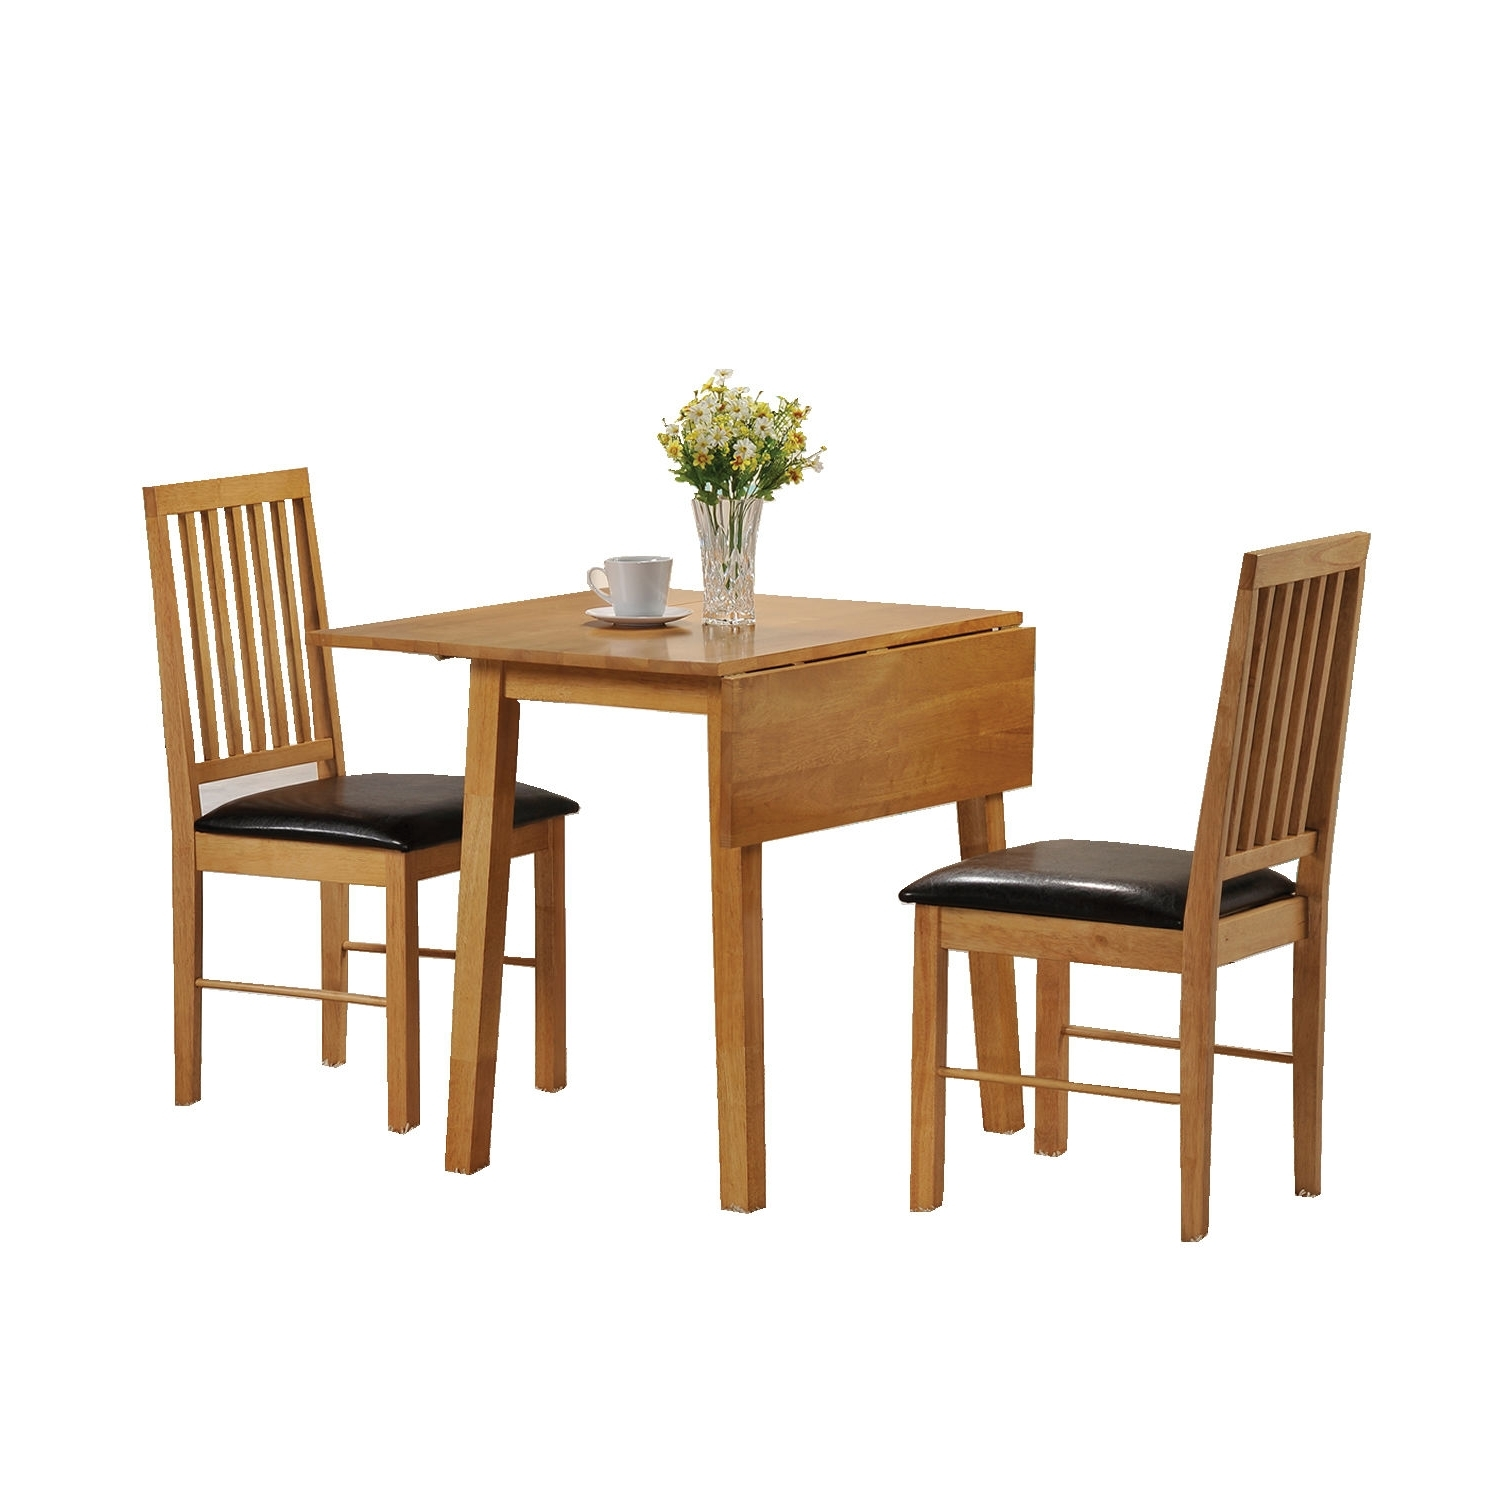 Ebay within Compact Folding Dining Tables And Chairs